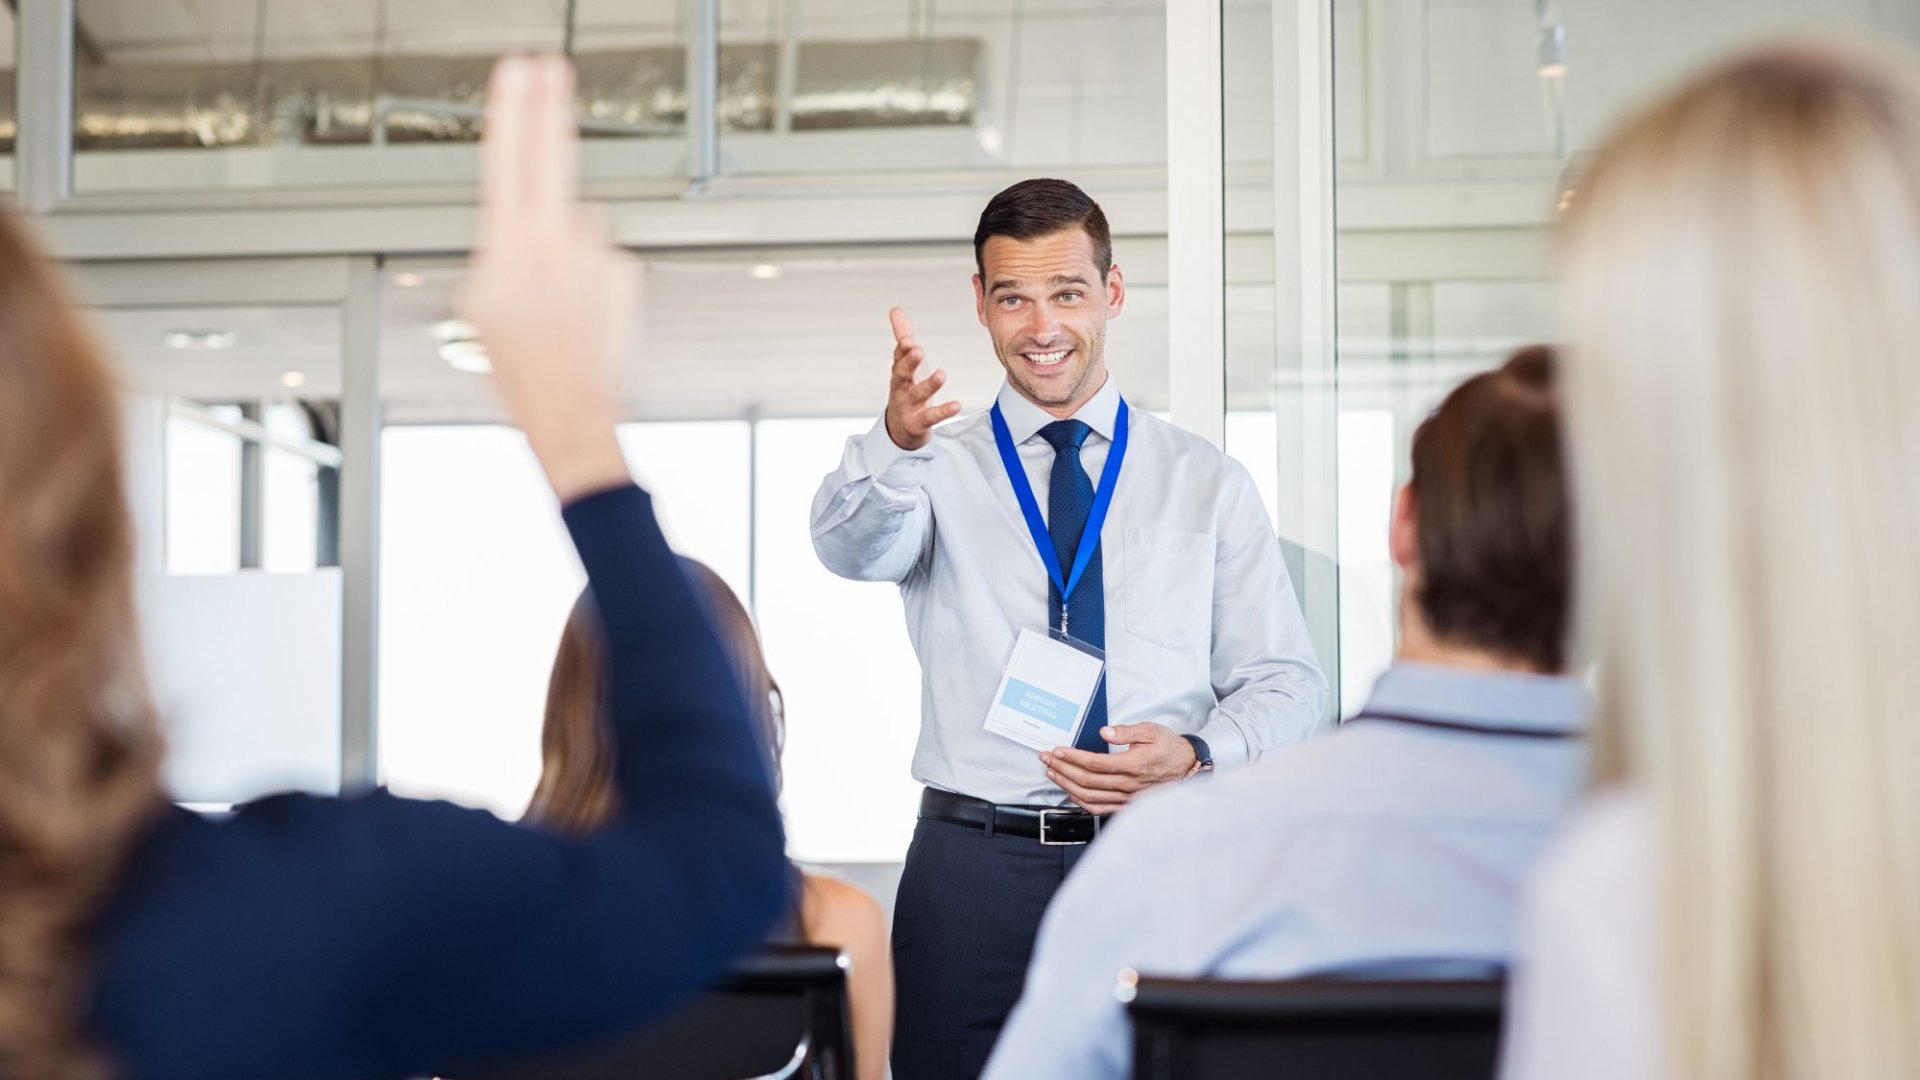 5 Types of Questions Good Leaders Ask  to Resolve the Toughest Issues